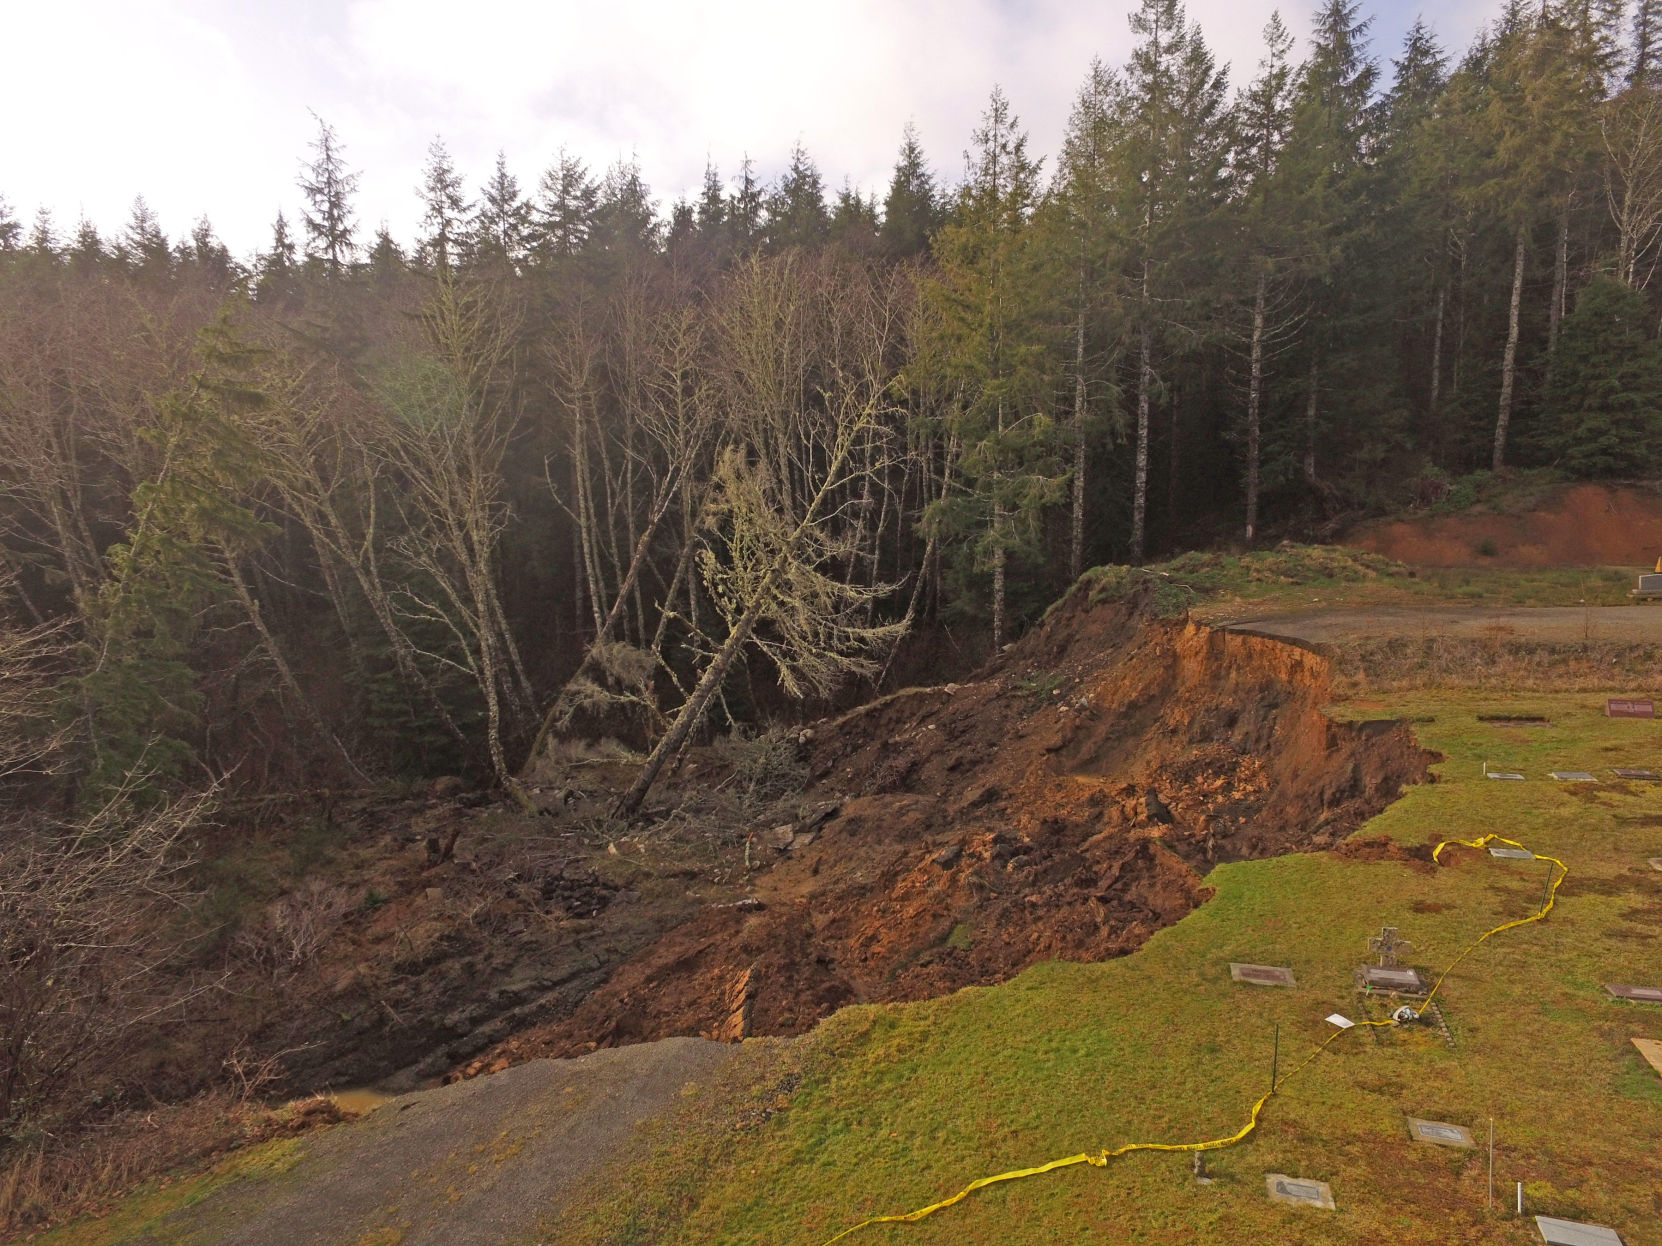 Drone photos provide eagle's eye view of Ilwaco Cemetery landslide